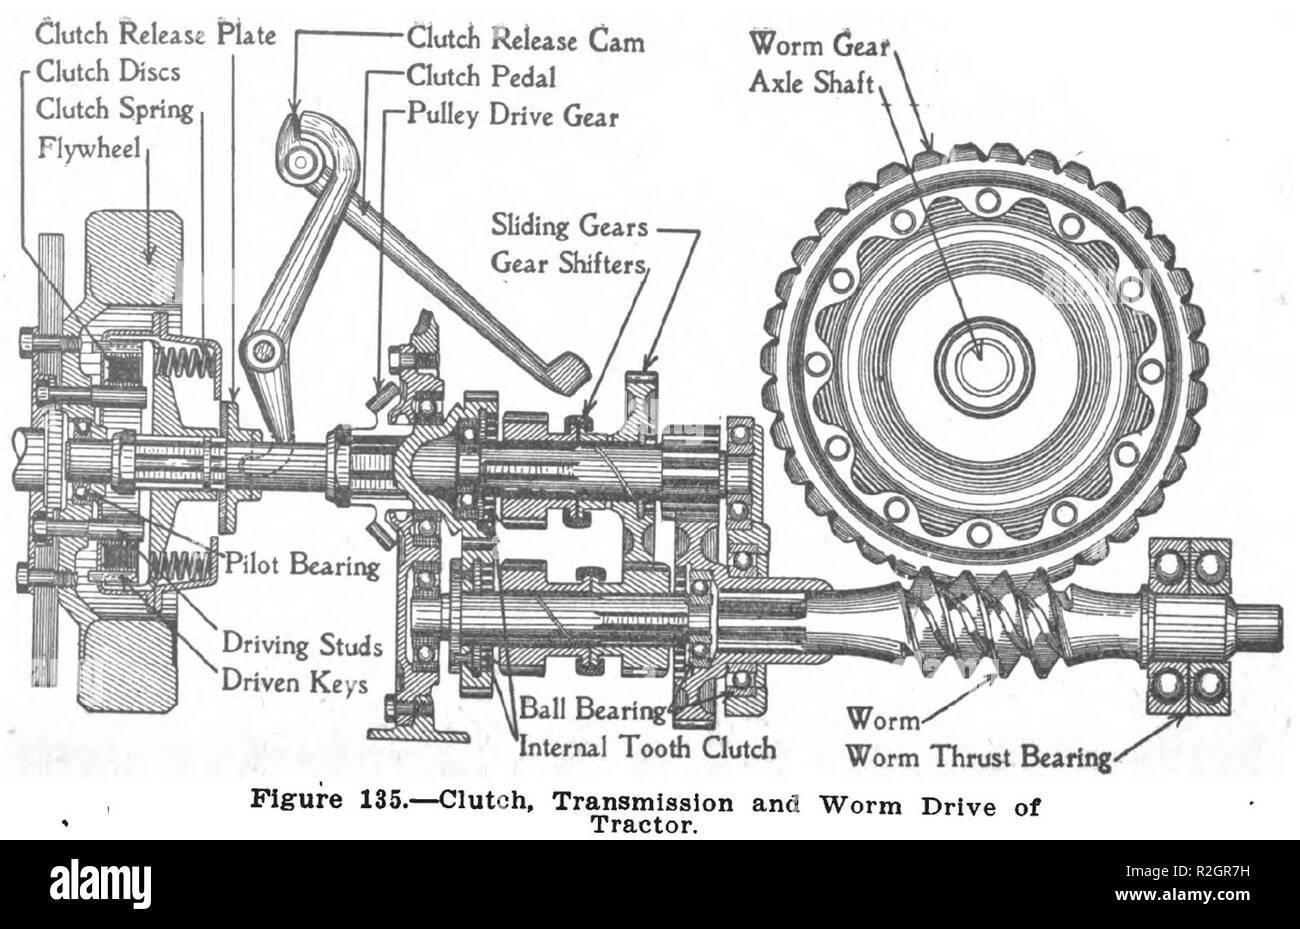 a cutaway view of the clutch, transmission, and rear of the original  fordson tractor, including the worm drive